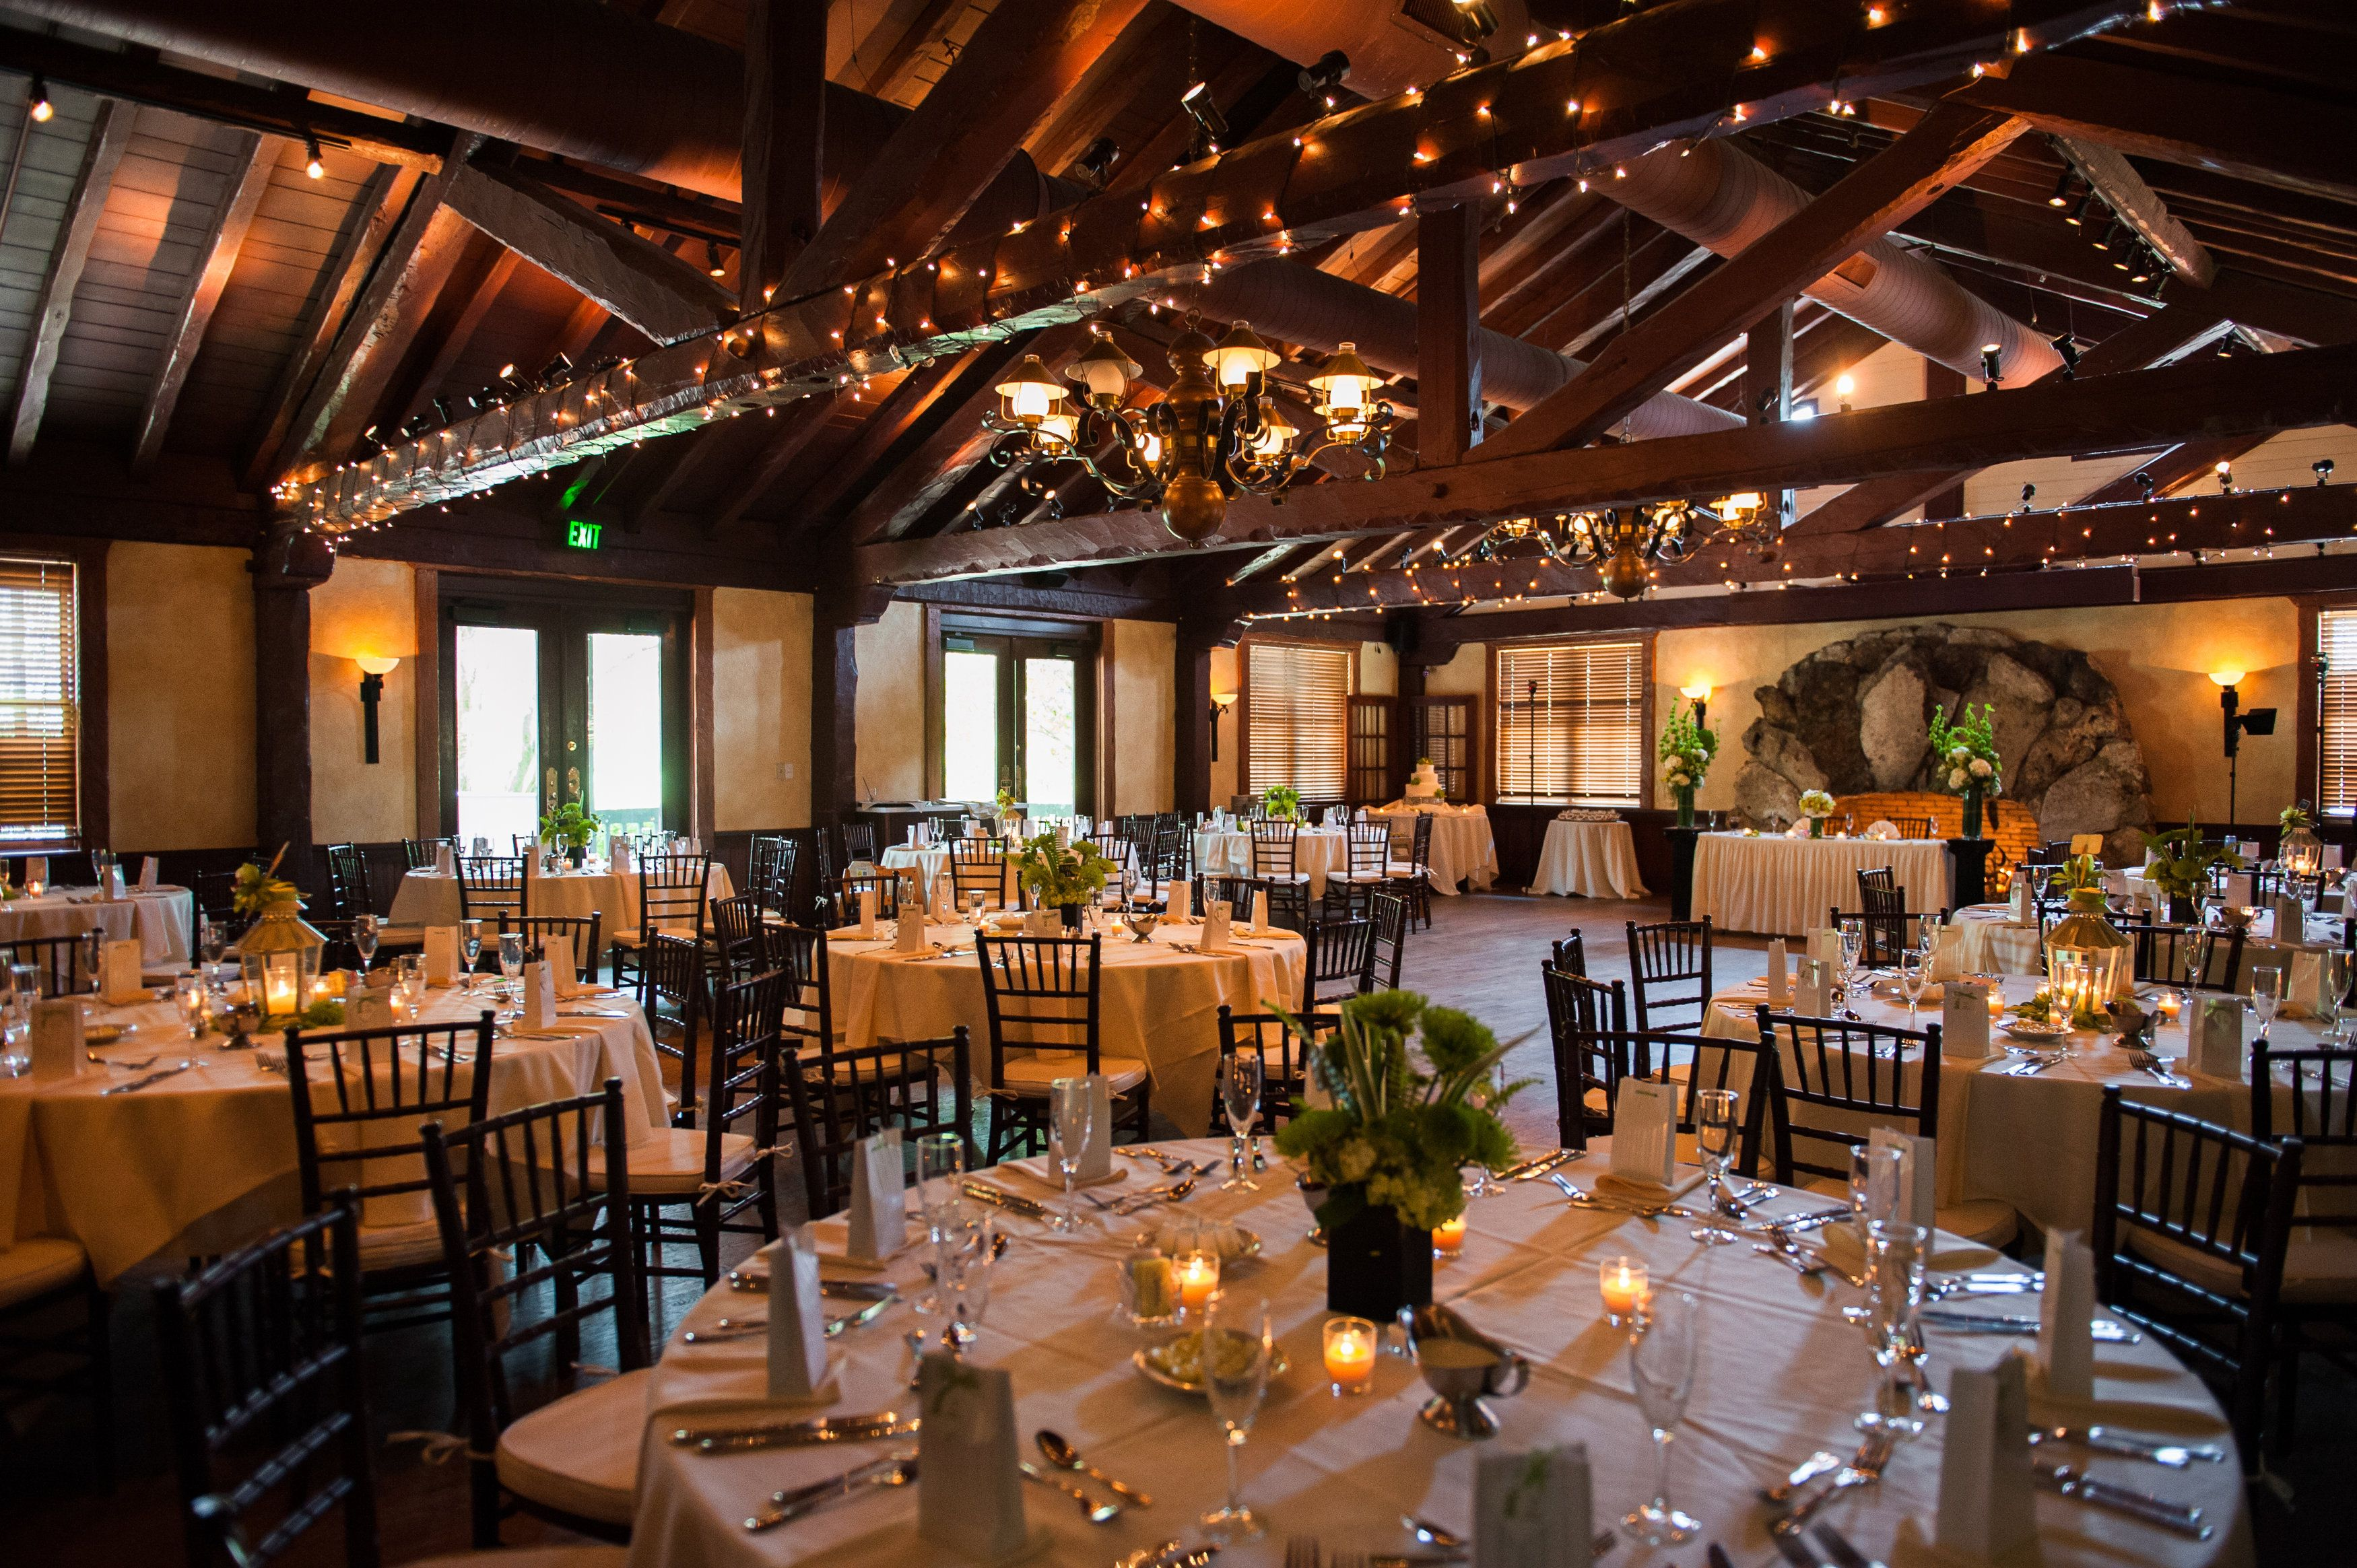 the dubsdread ballroom has been voted the best wedding venue in central florida by readers of